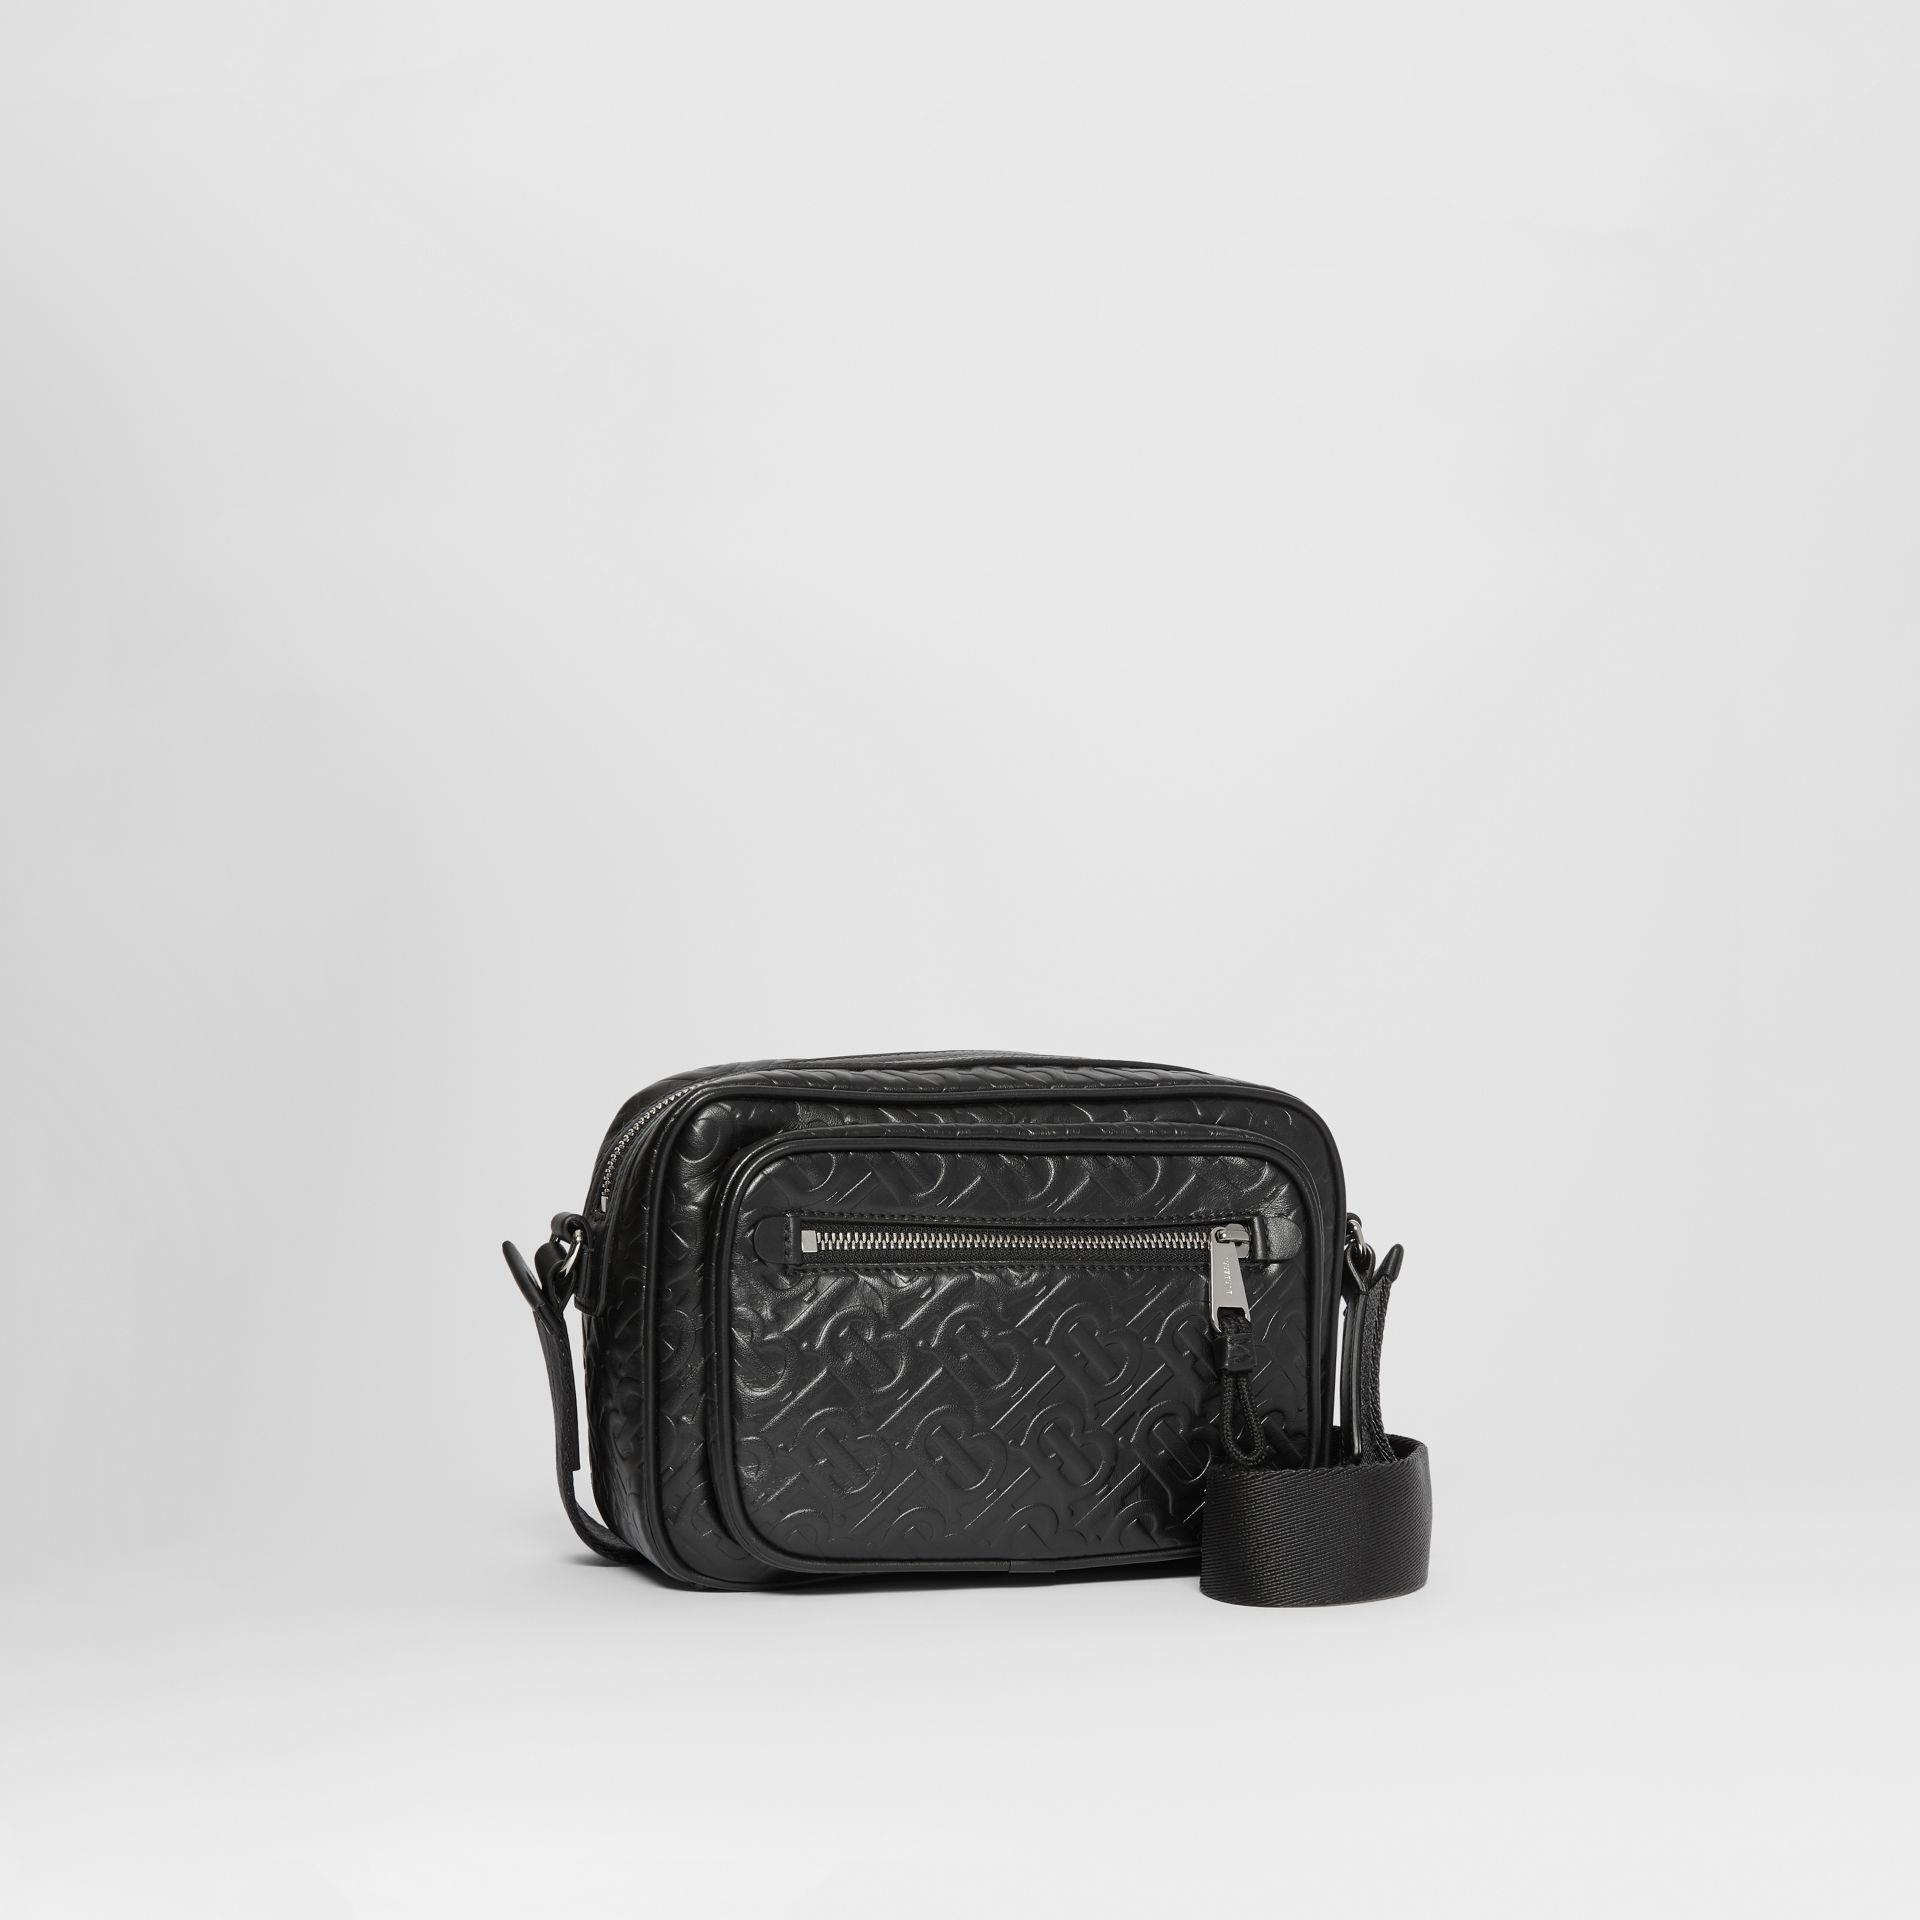 Monogram Leather Crossbody Bag in Black - Men | Burberry Australia - gallery image 6